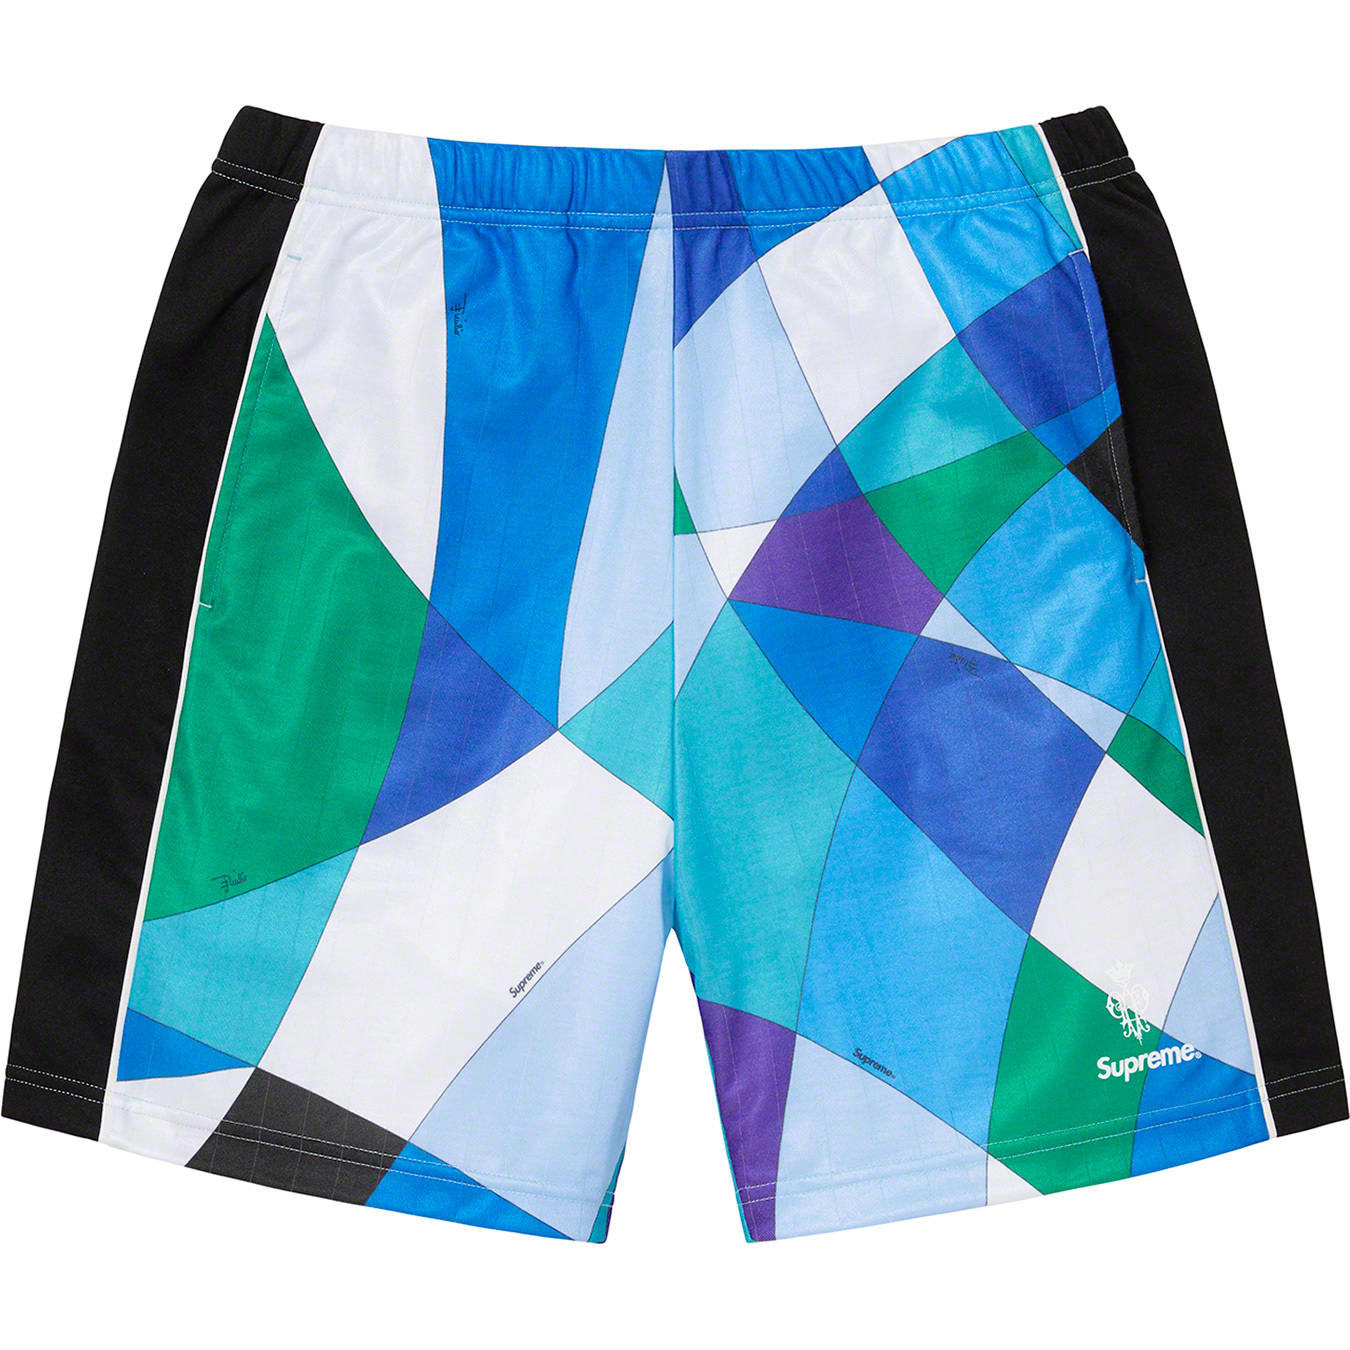 supreme-emilio-pucci-21ss-collaboration-release-20210612-week16-soccer-short